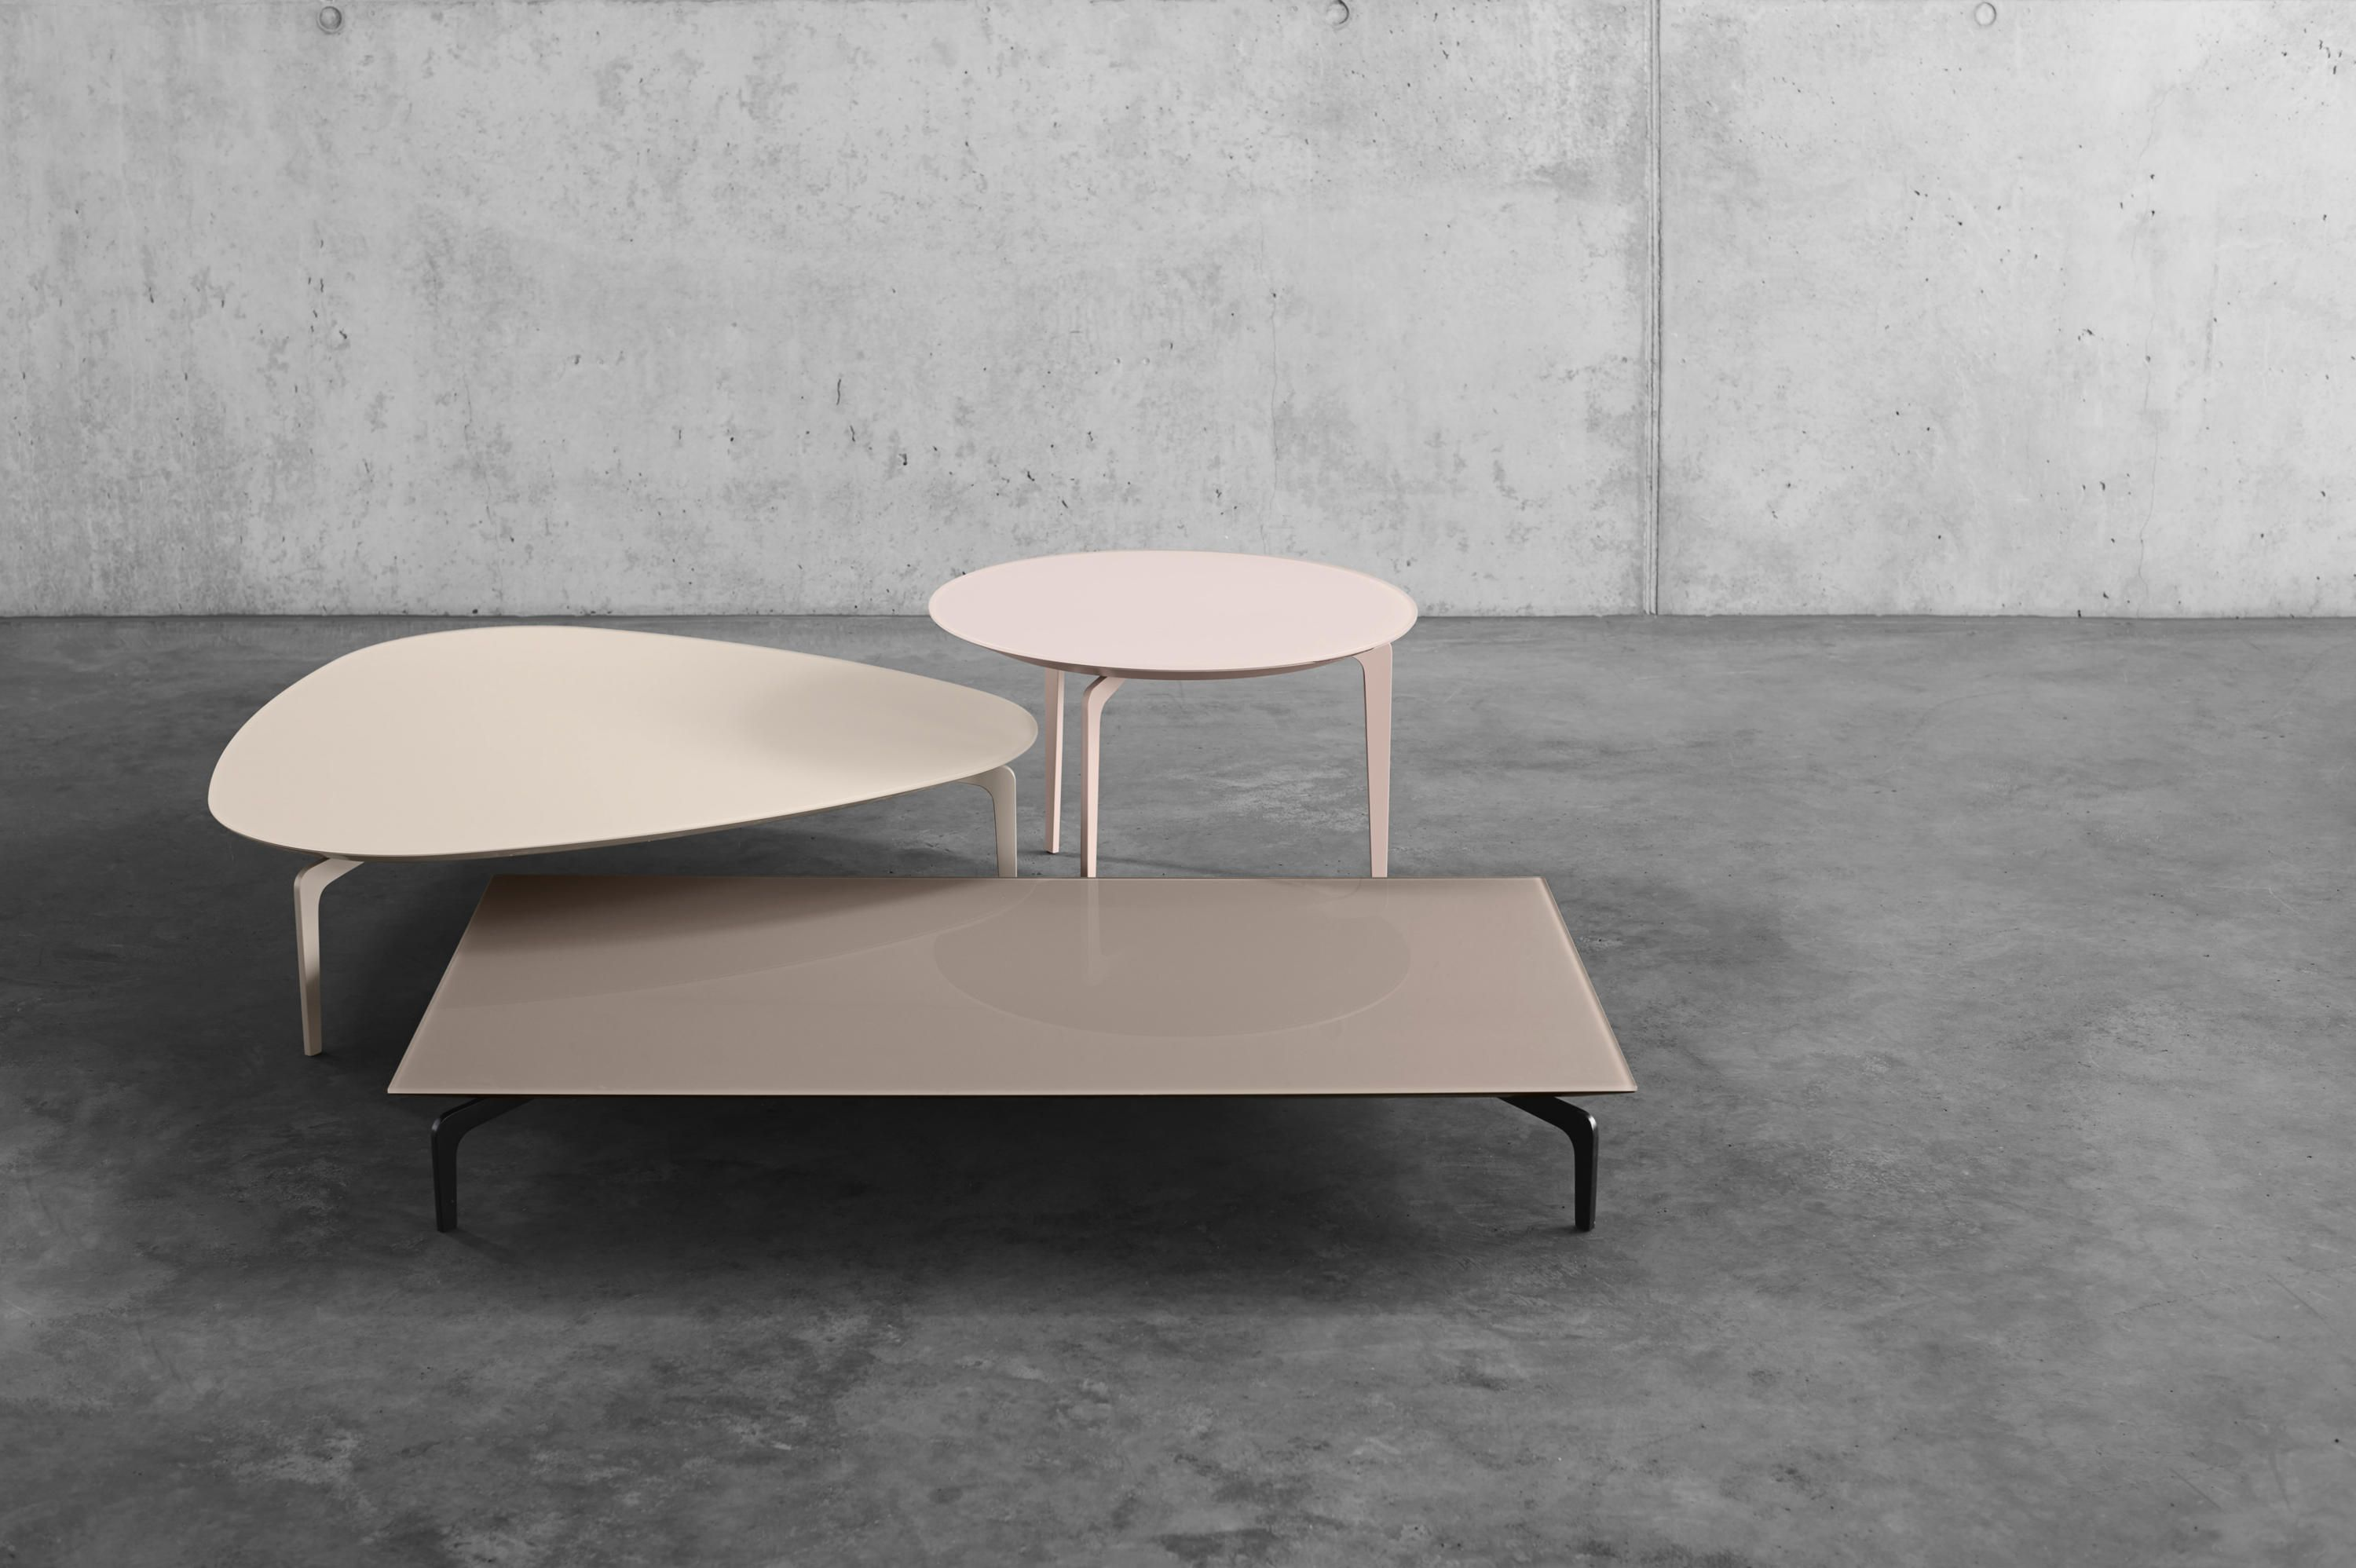 Kettnaker Couchtisch - Solo T2 15 002 01 Designer Coffee Tables From Kettnaker  All